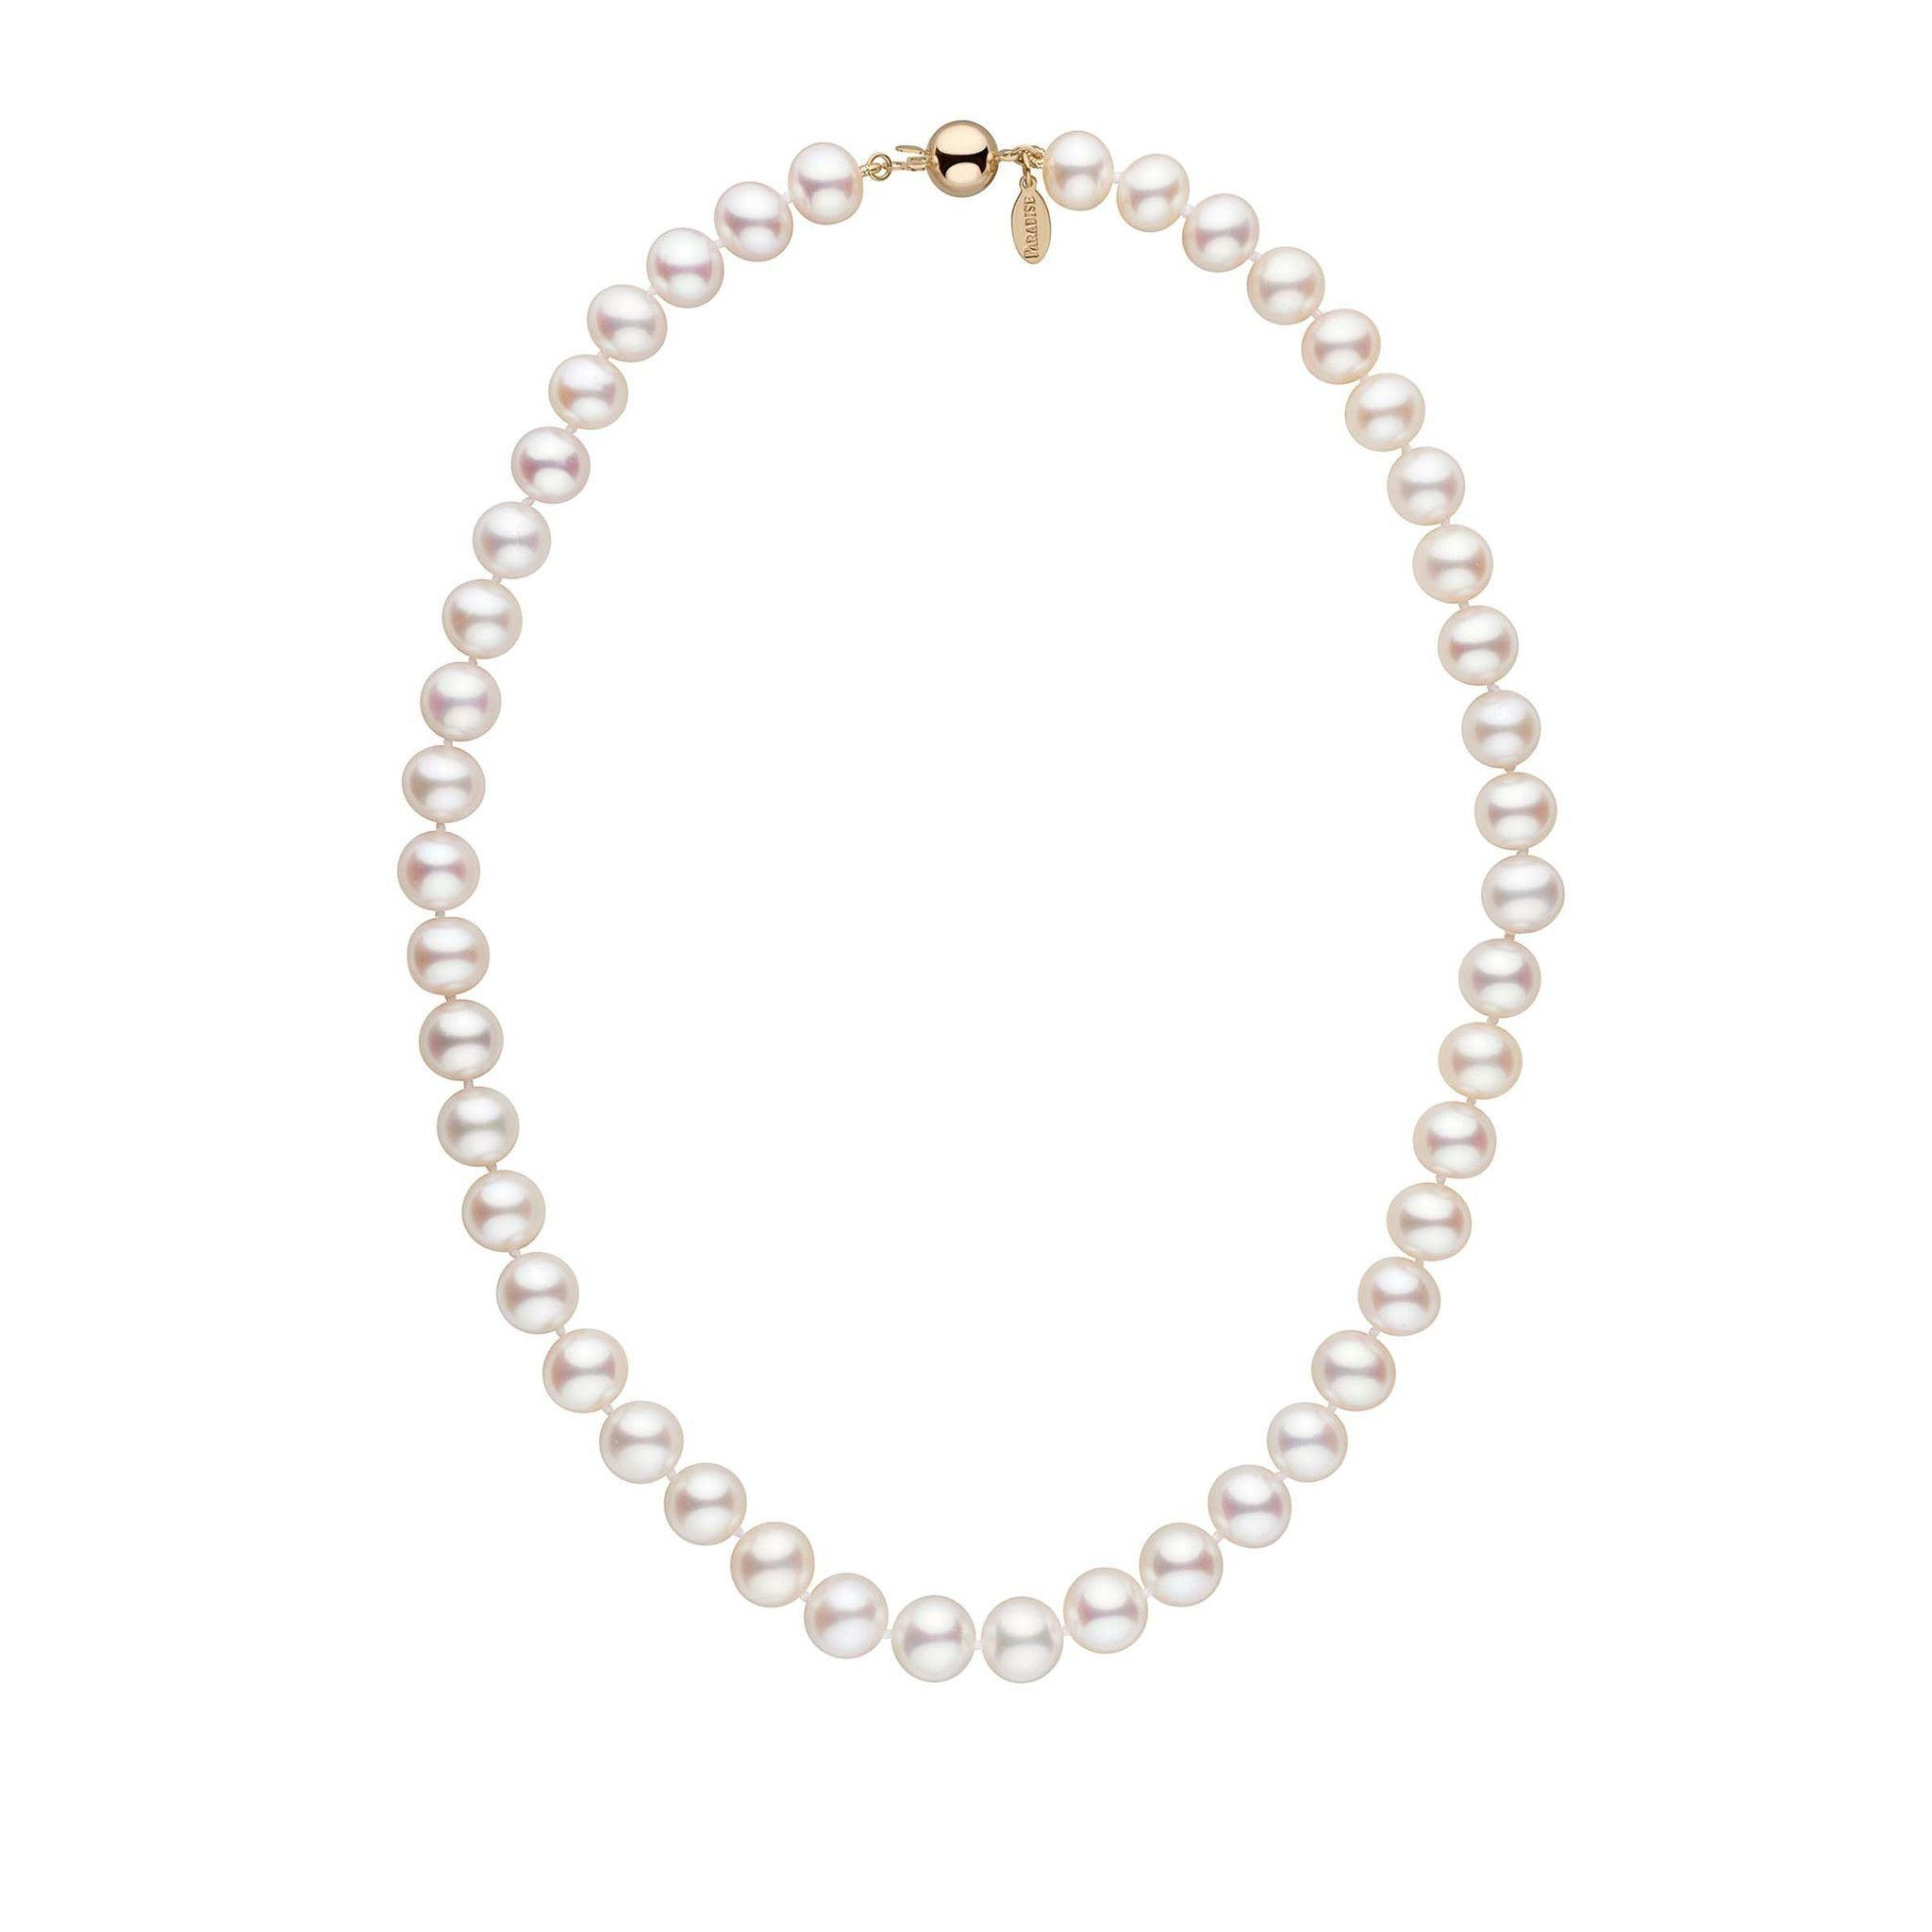 9.0-9.5 mm 16 Inch White Freshadama Freshwater Pearl Necklace